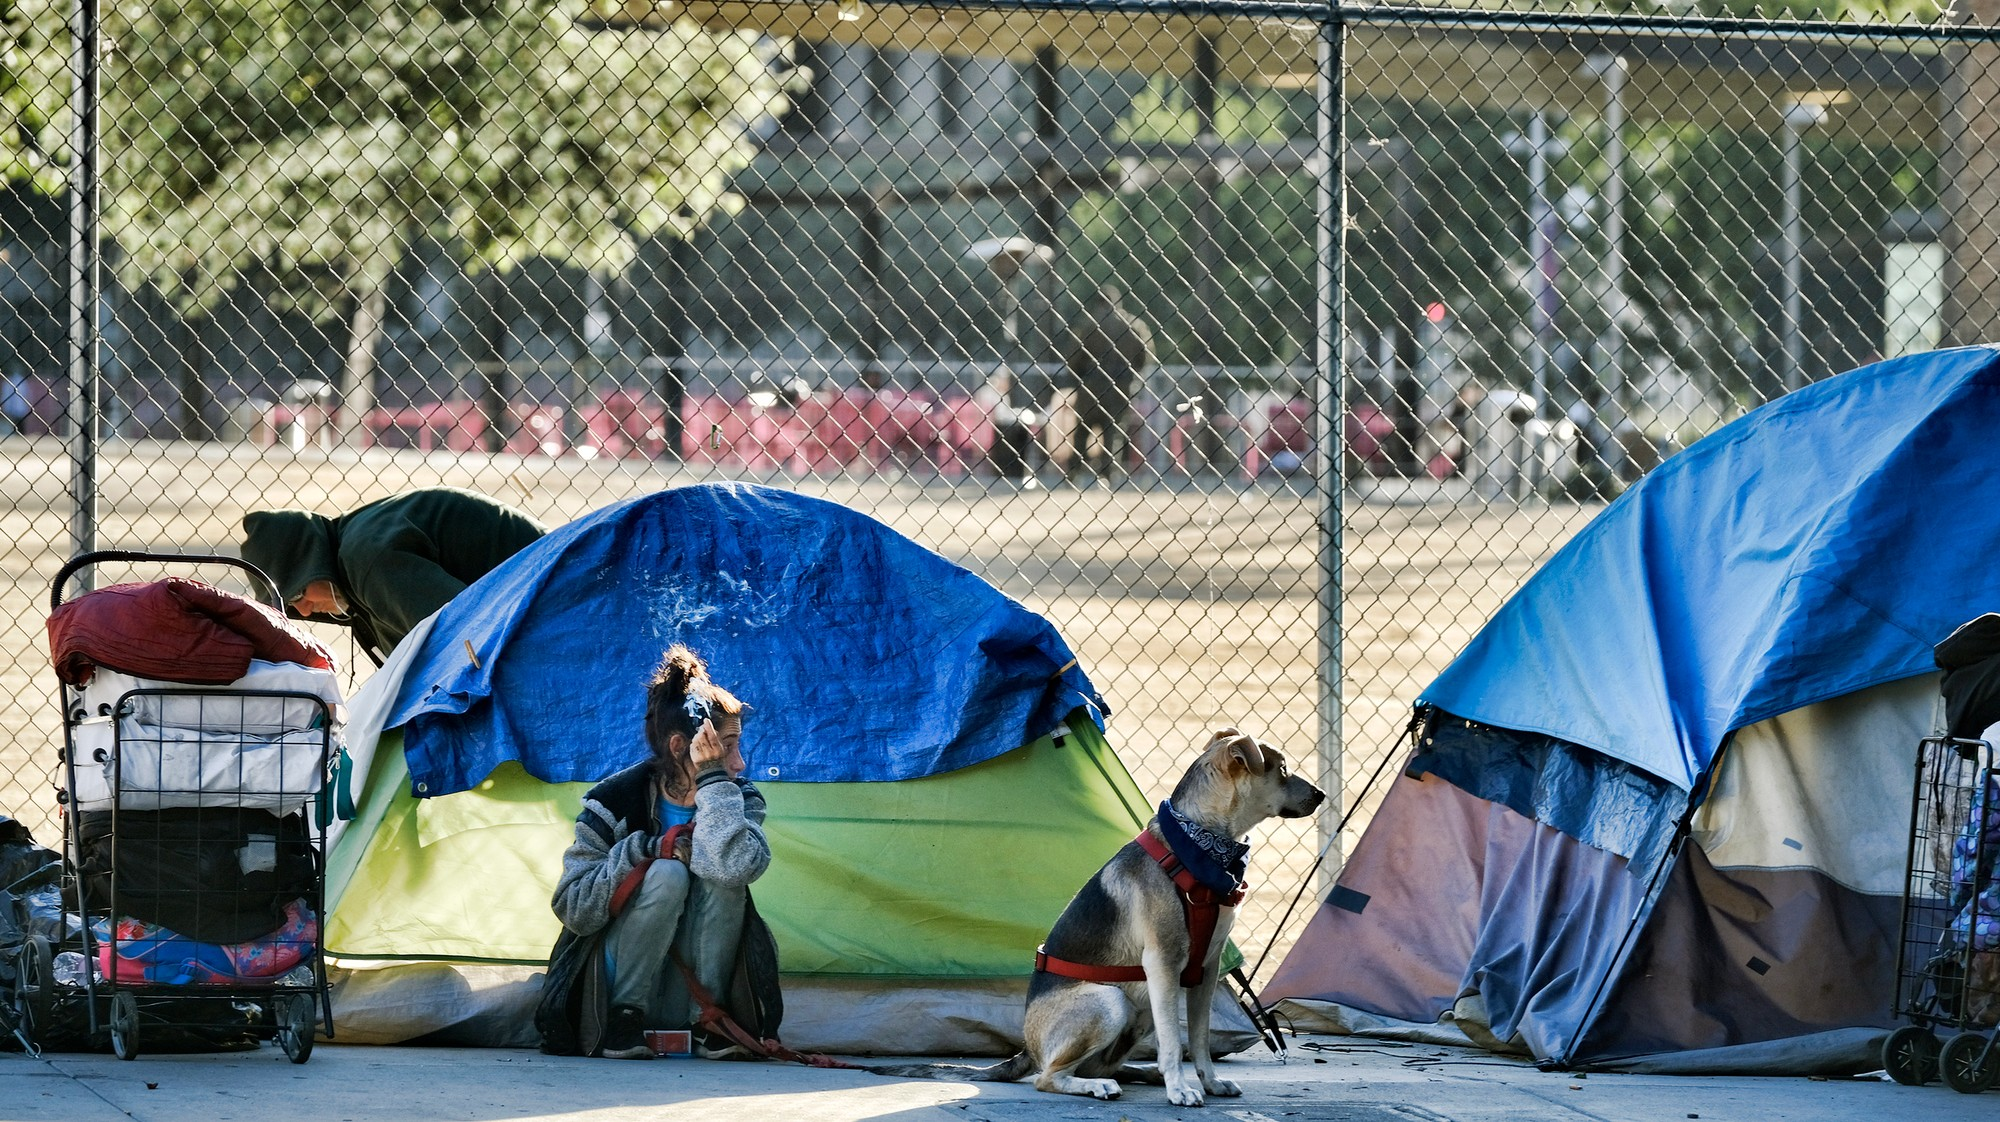 Los Angeles Might Start Punishing Homeless People Based on